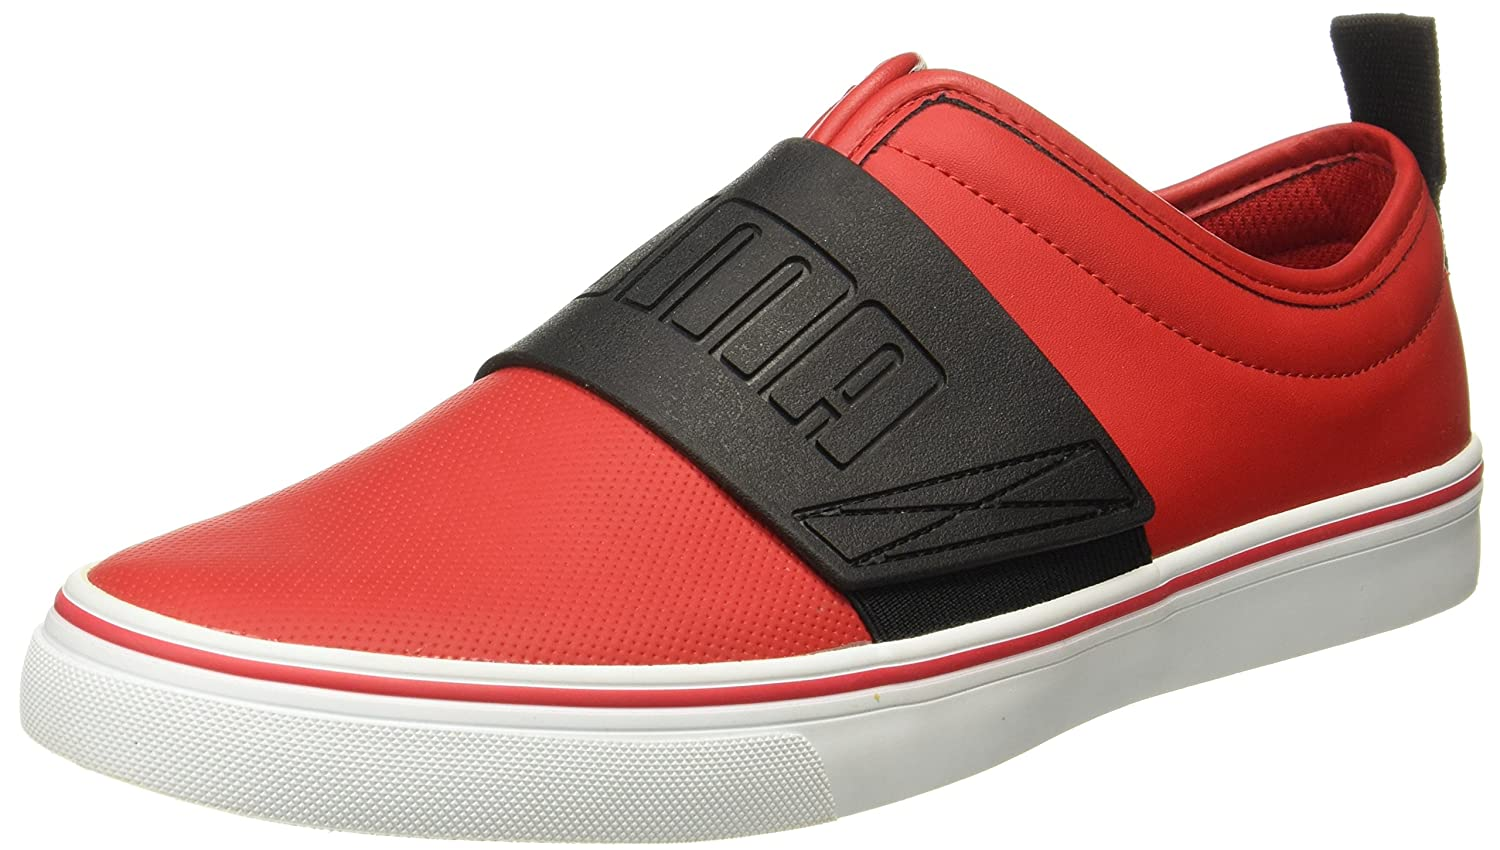 b4c58d83b0e4 Puma Men s El Rey Fun Idp Sneakers  Buy Online at Low Prices in India -  Amazon.in